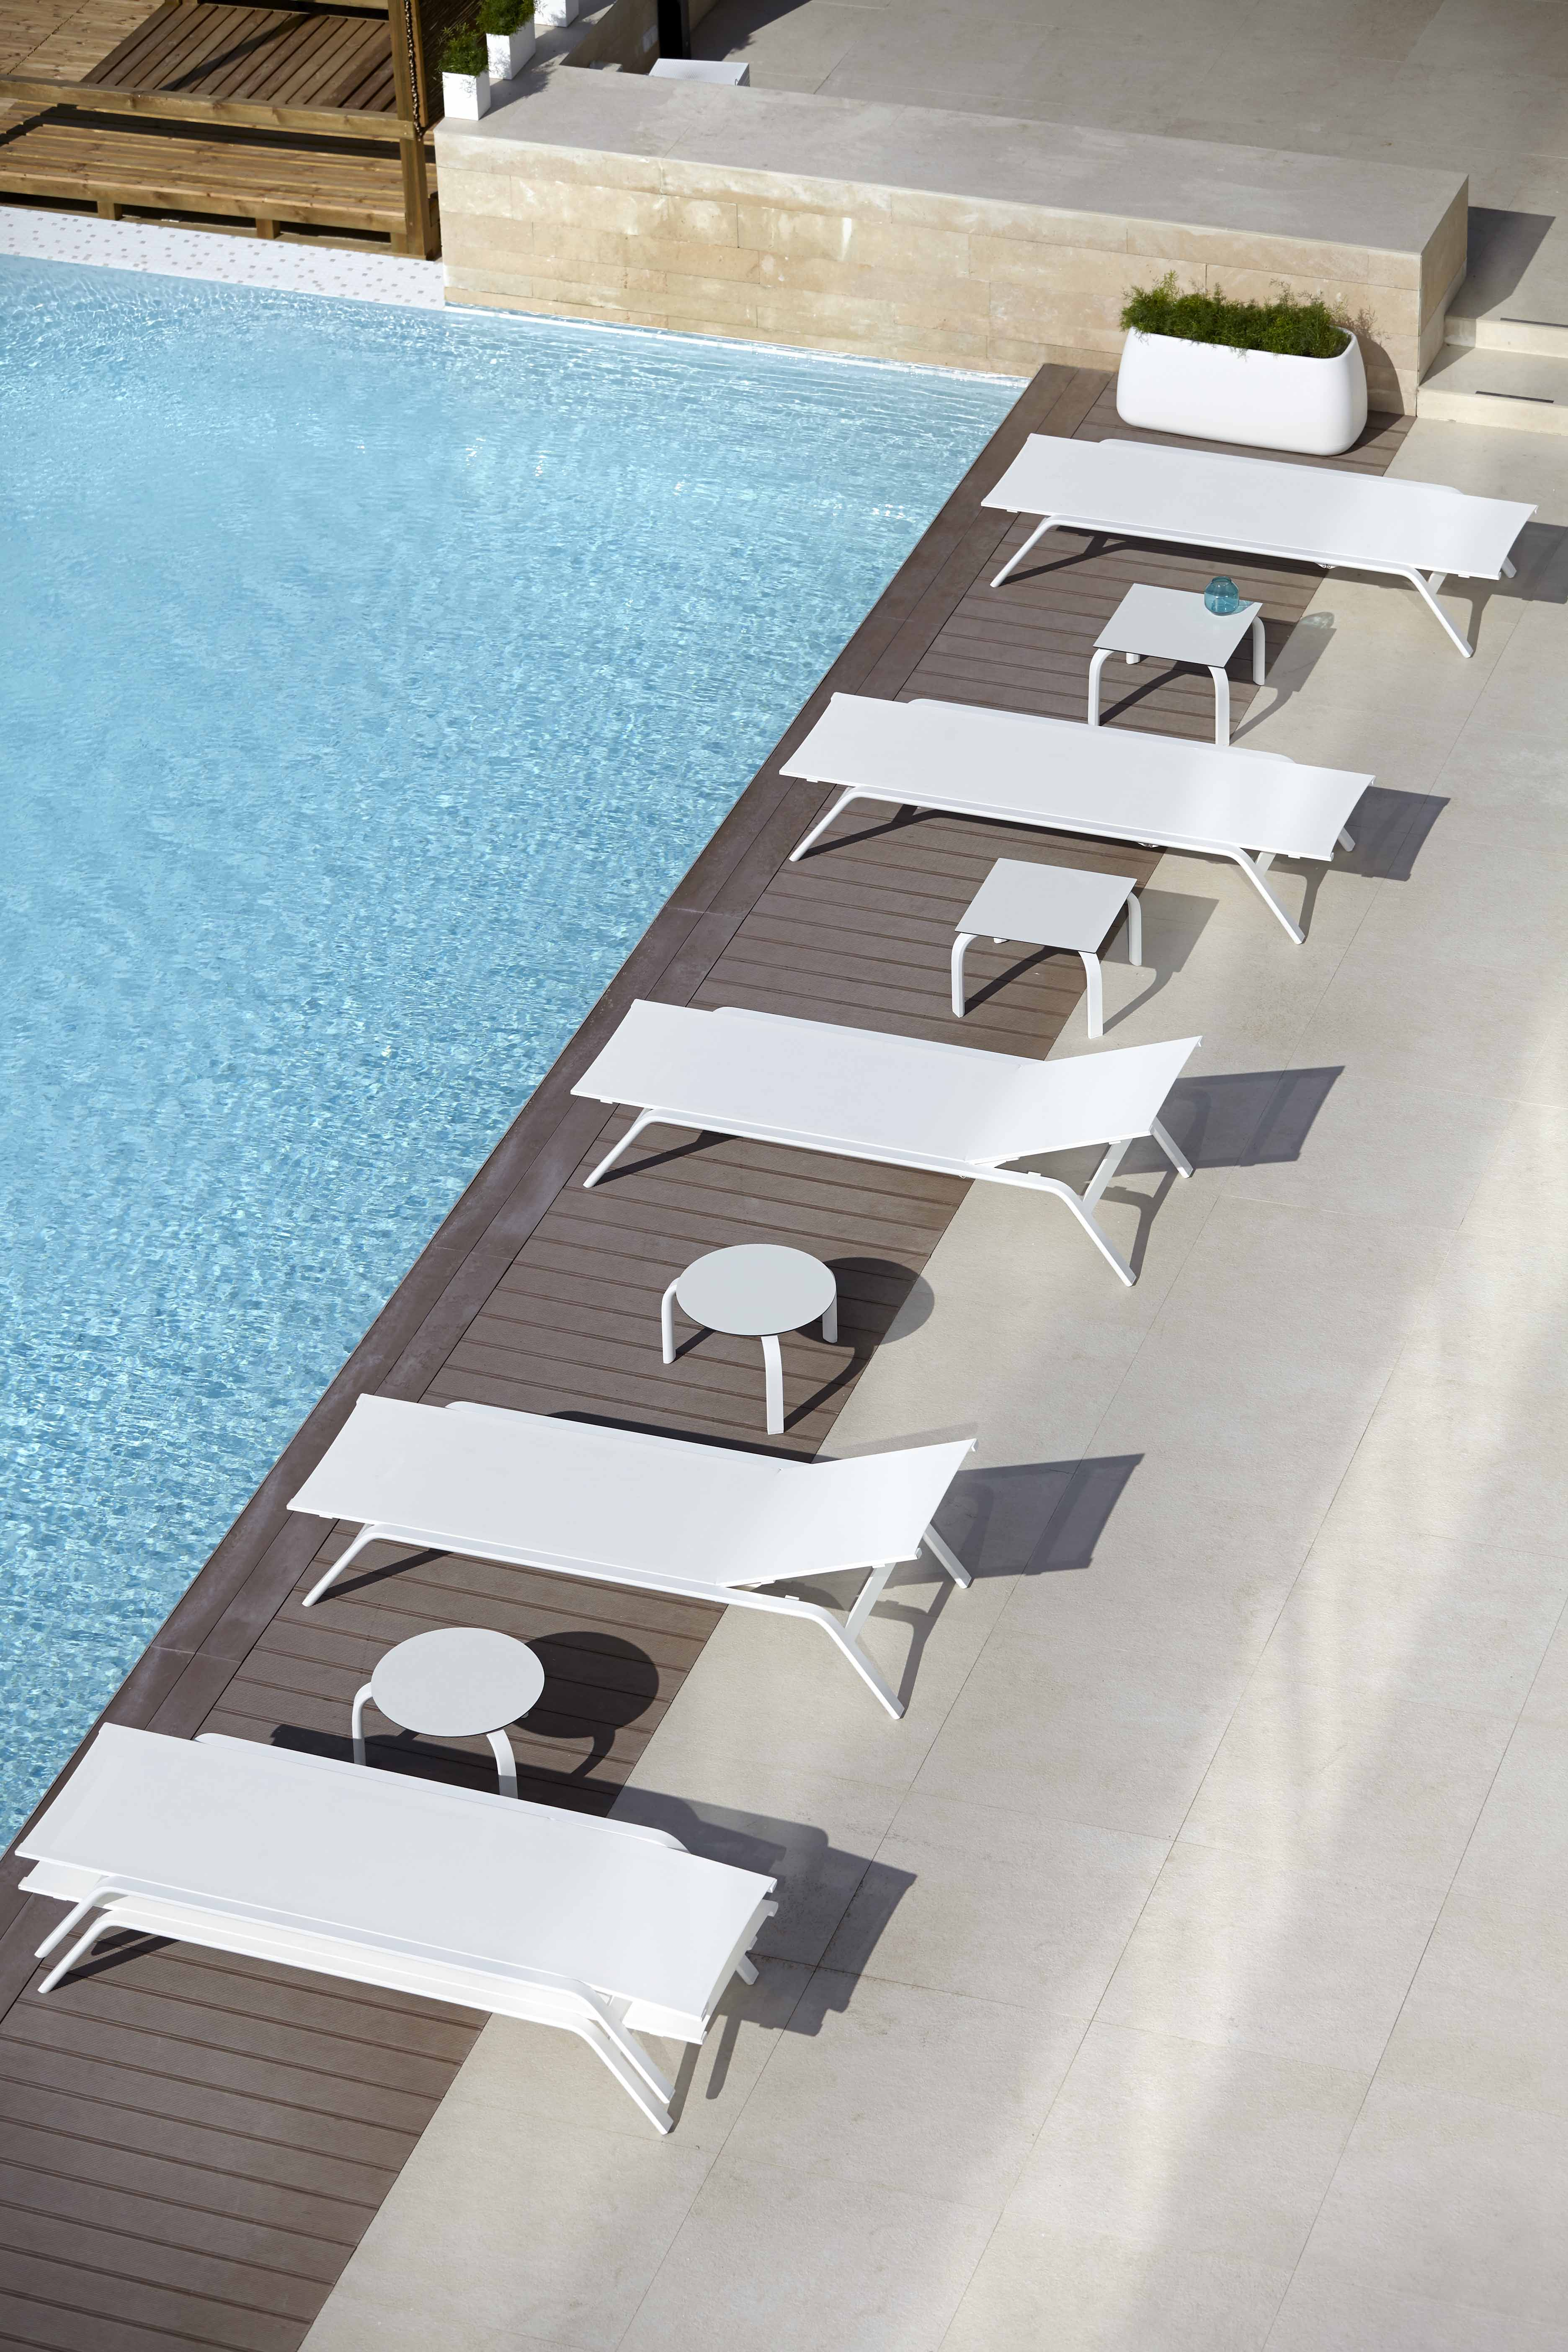 stack-chaiselongues-and-tables-for-chaiselongues-ambience-image